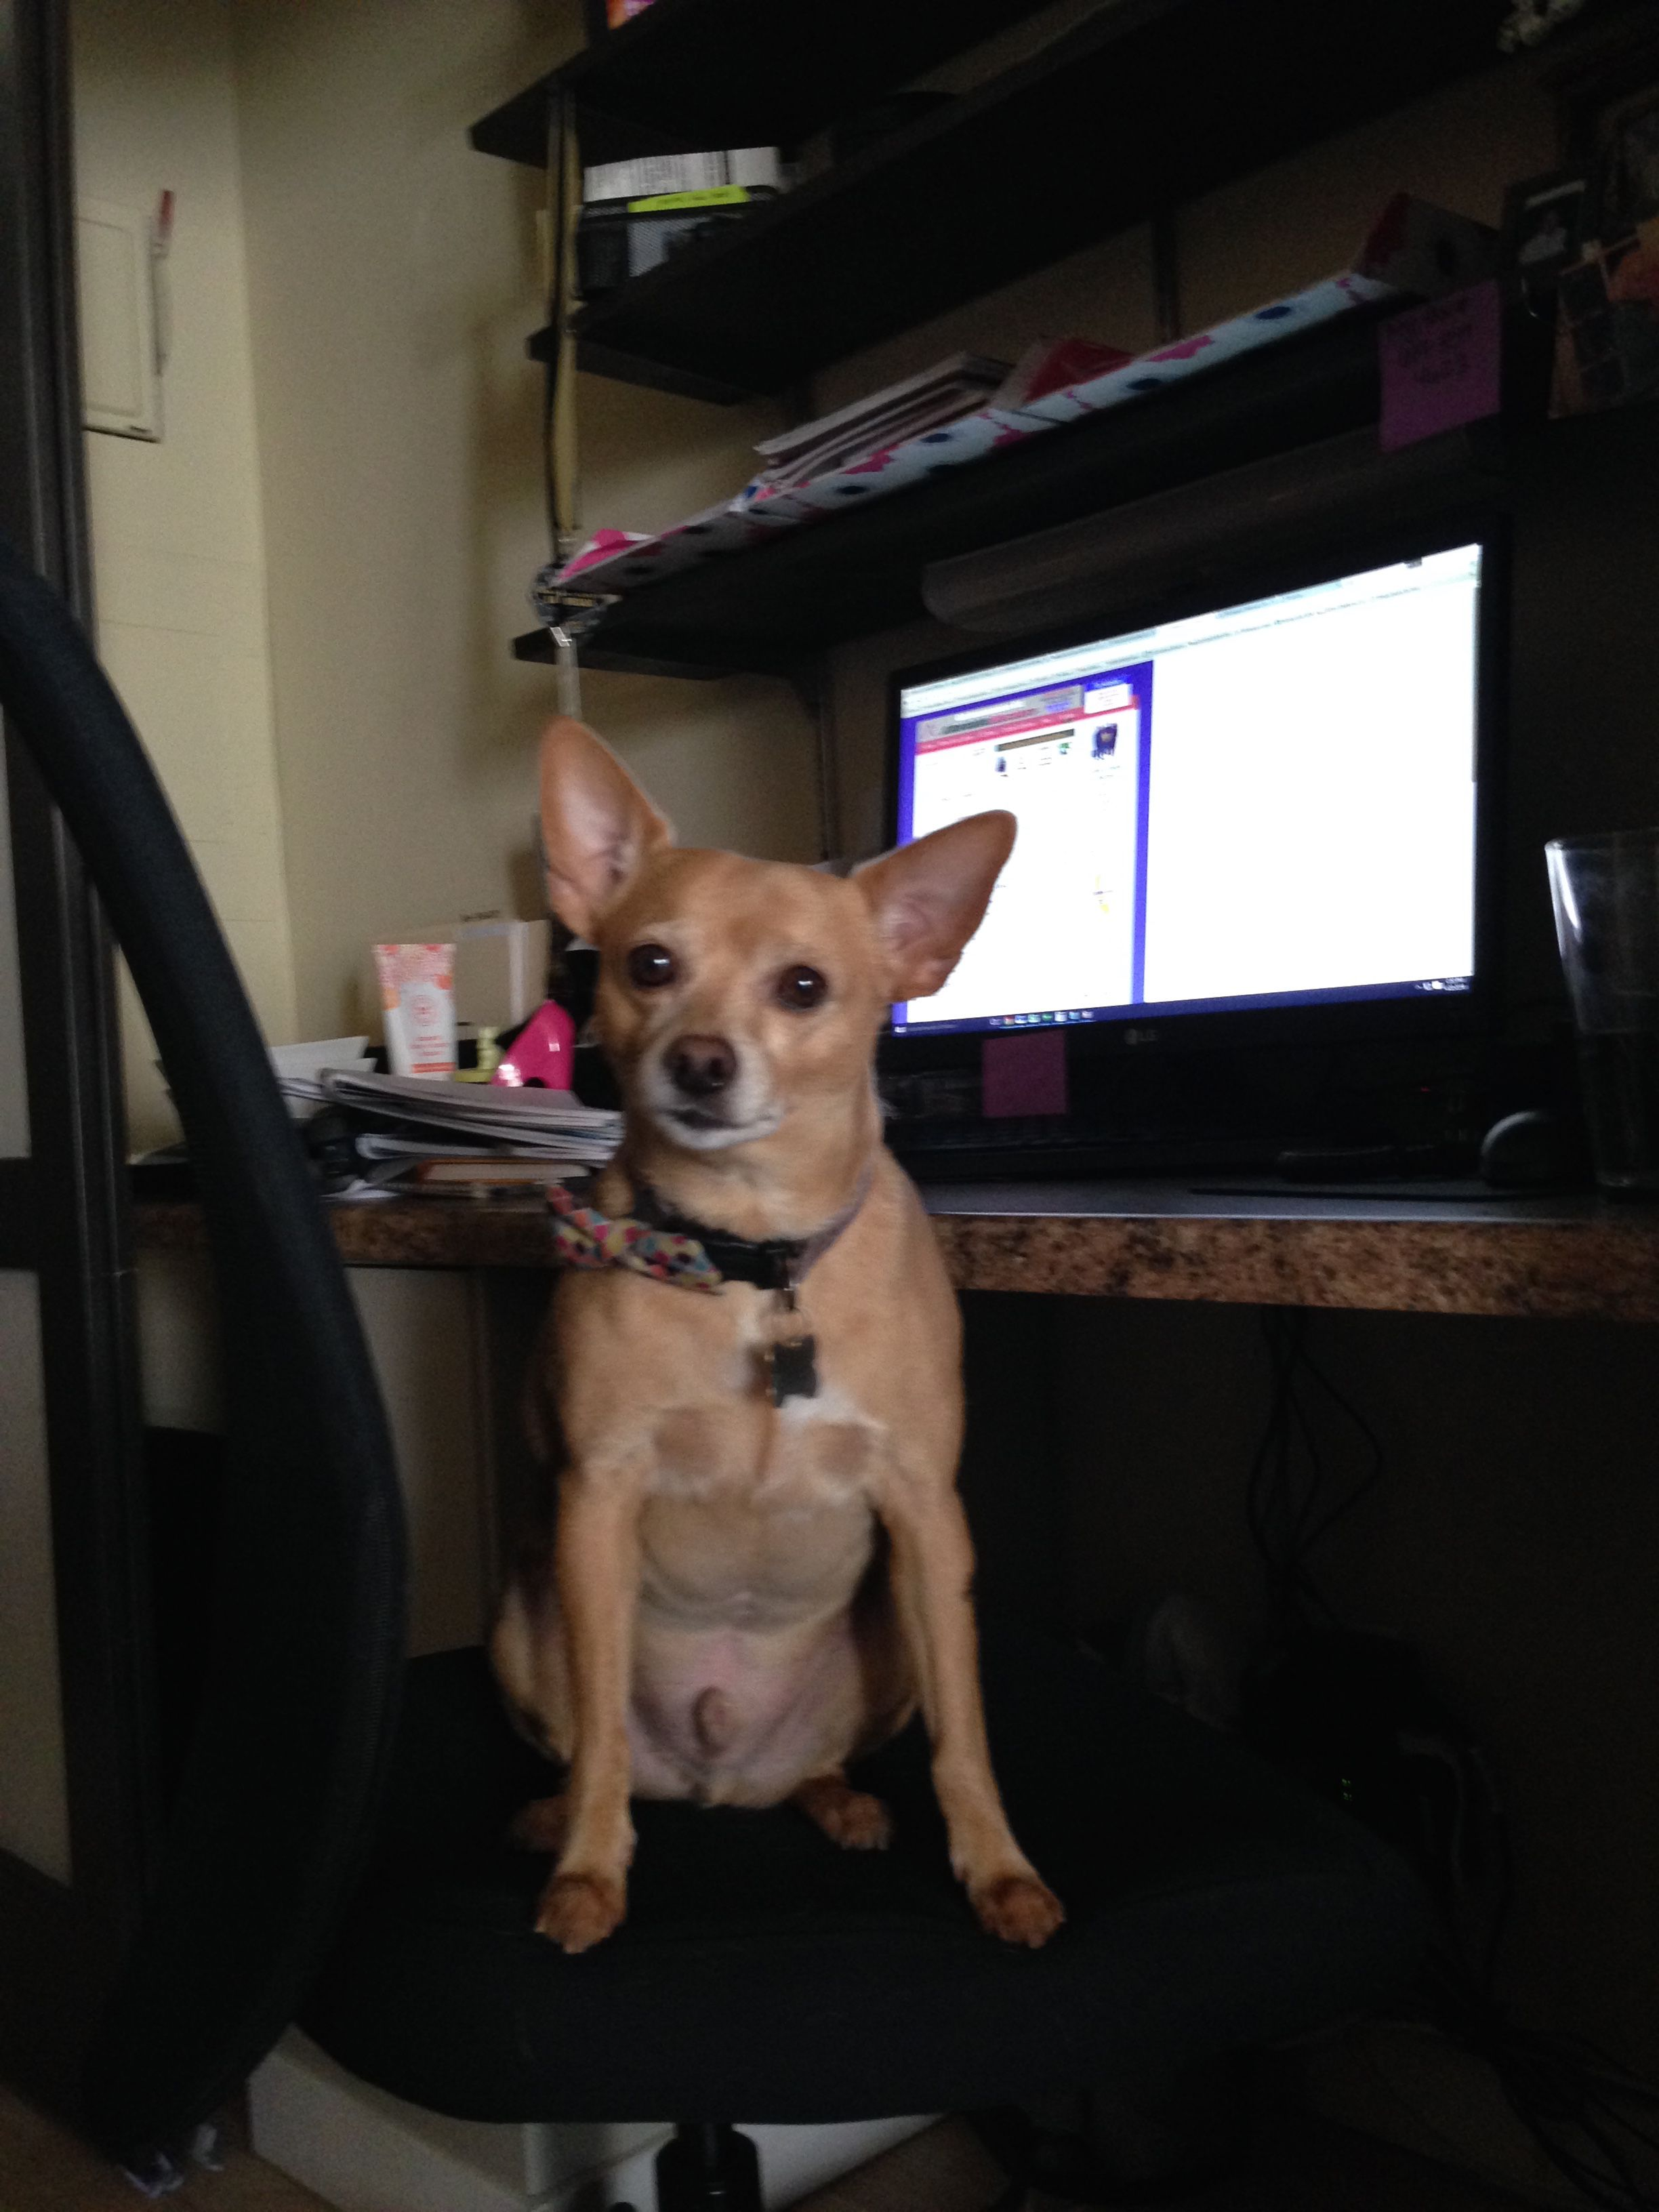 We love our little office mascot, Marty! He loves tacos, hikes, the beach, and being an expert watch dog. Way to go, Marty. You make us all smile :)